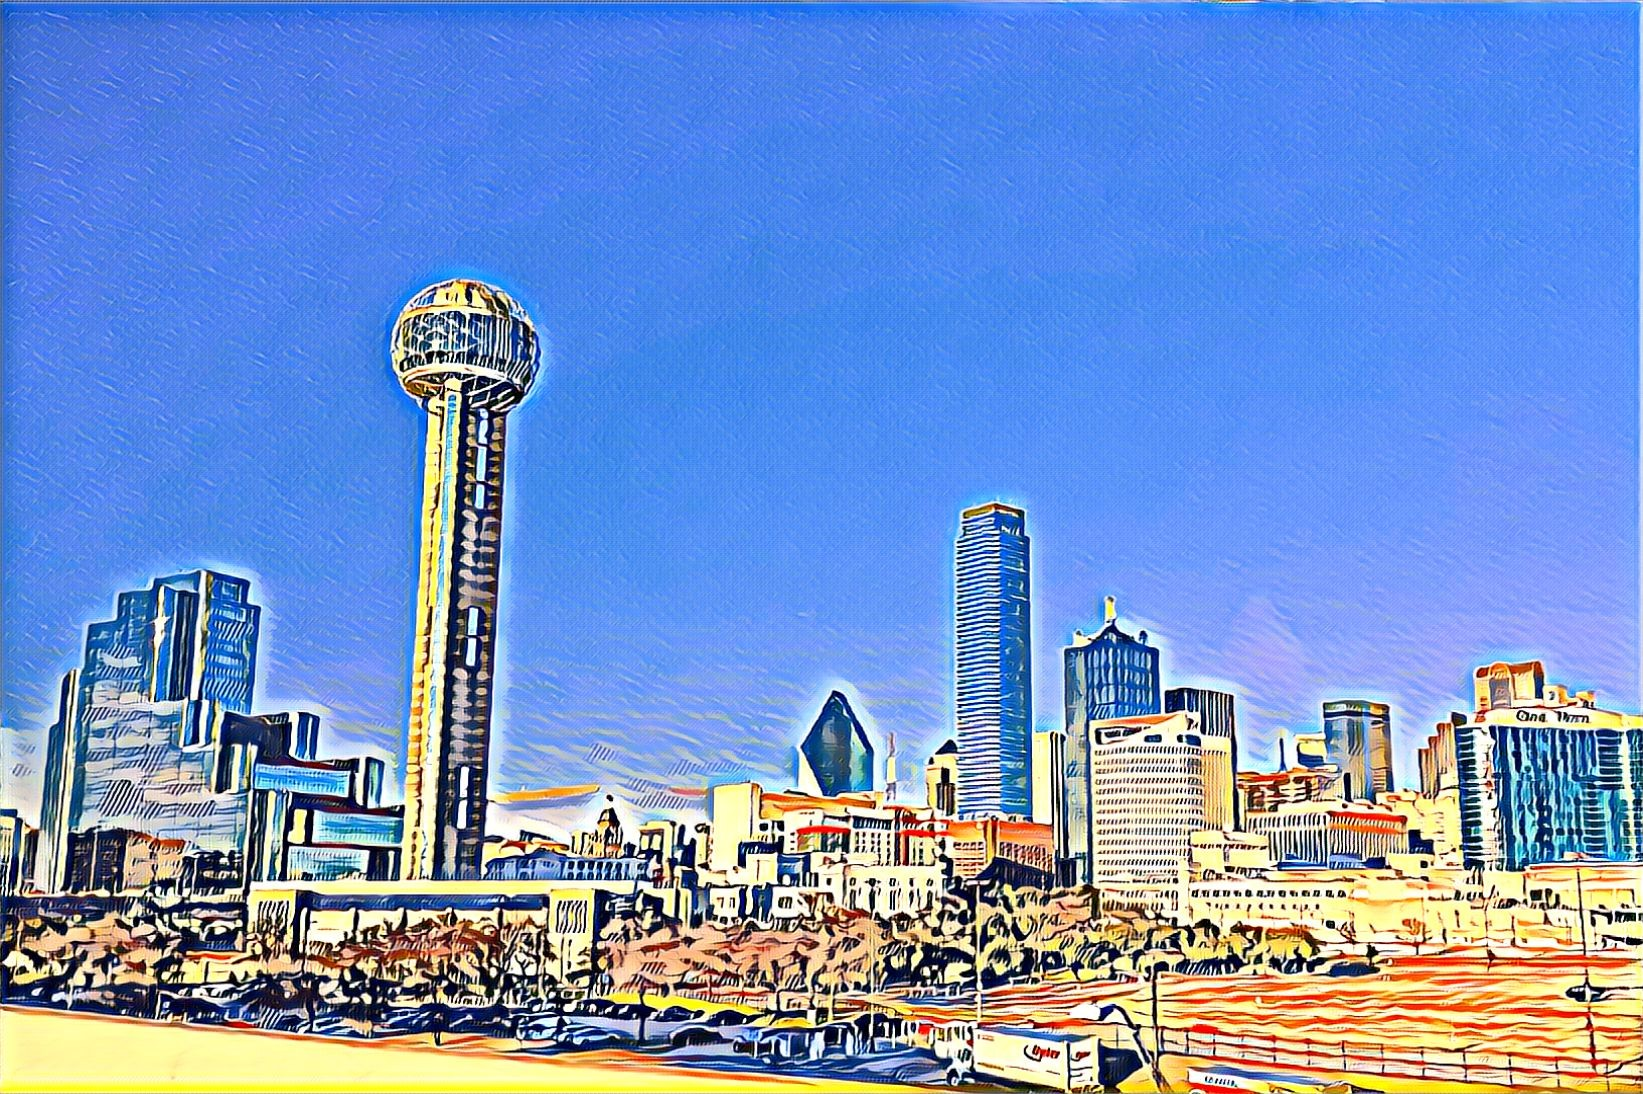 A City I Can't Quite Put My Finger On: Dallas, TX